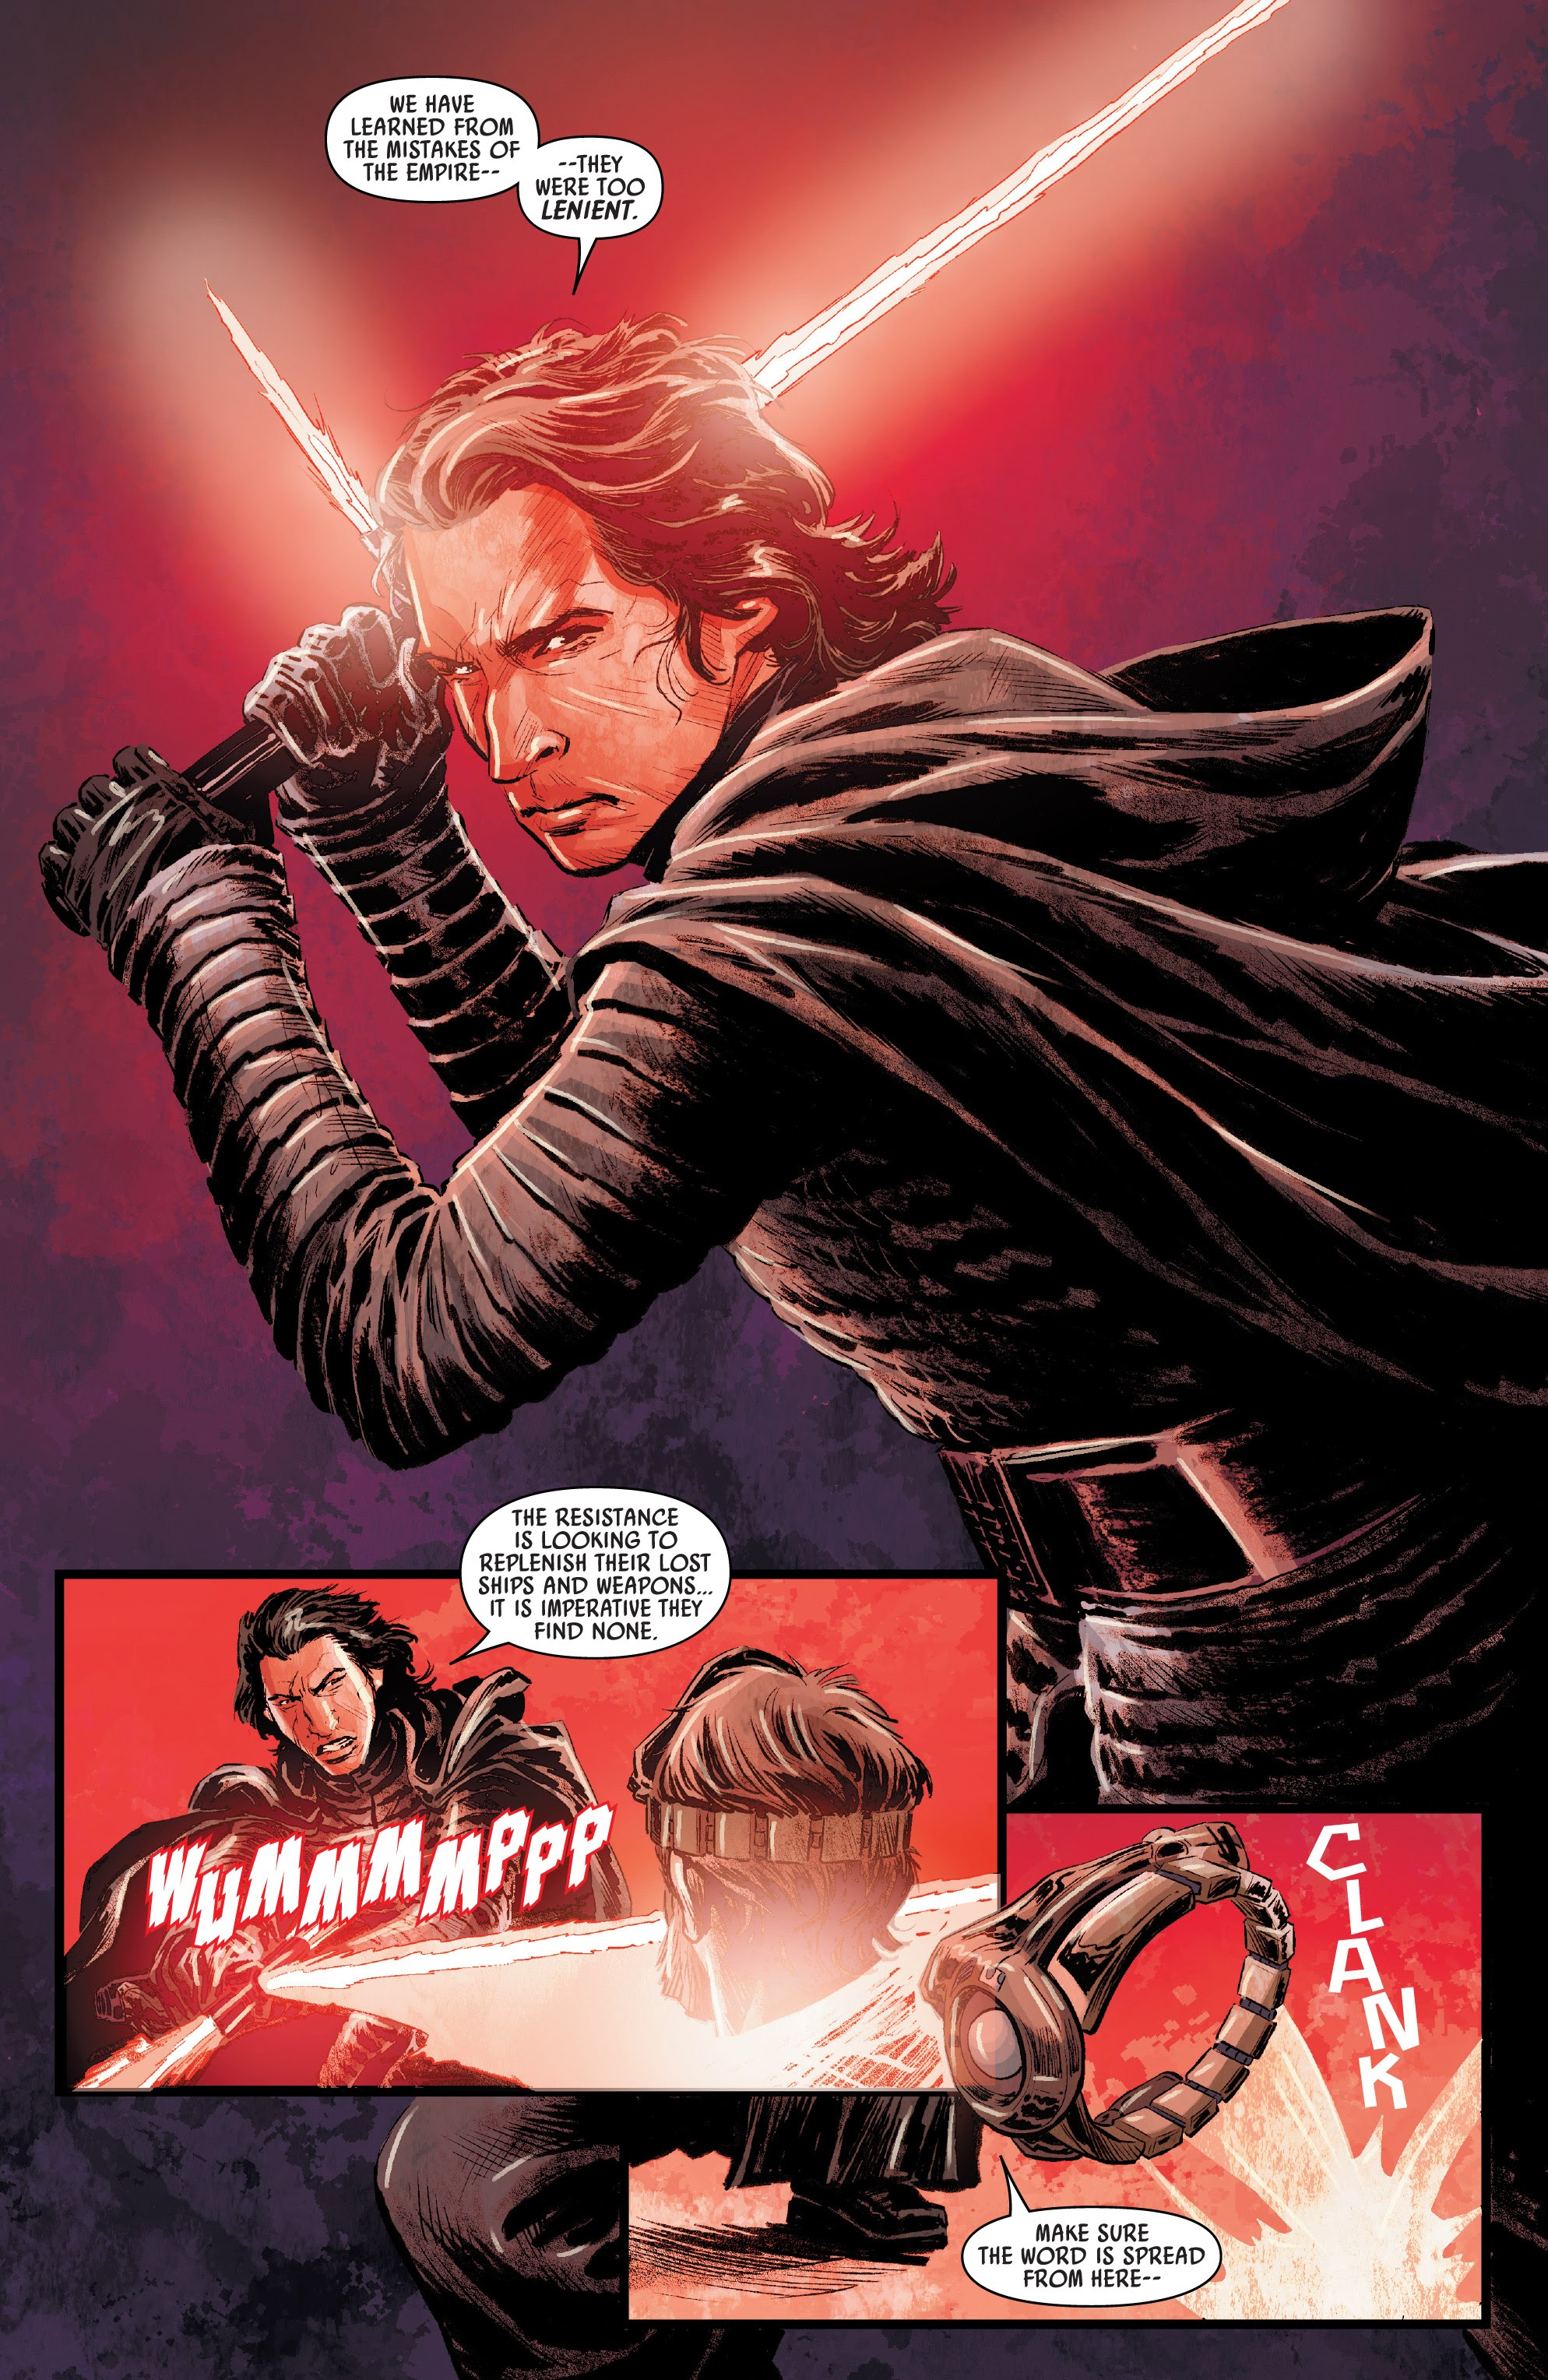 Journey To Star Wars The Rise Of Skywalker Allegiance 2 Read Journey To Star Wars The Rise Of Skywalker Allegiance Issue 2 Page 12